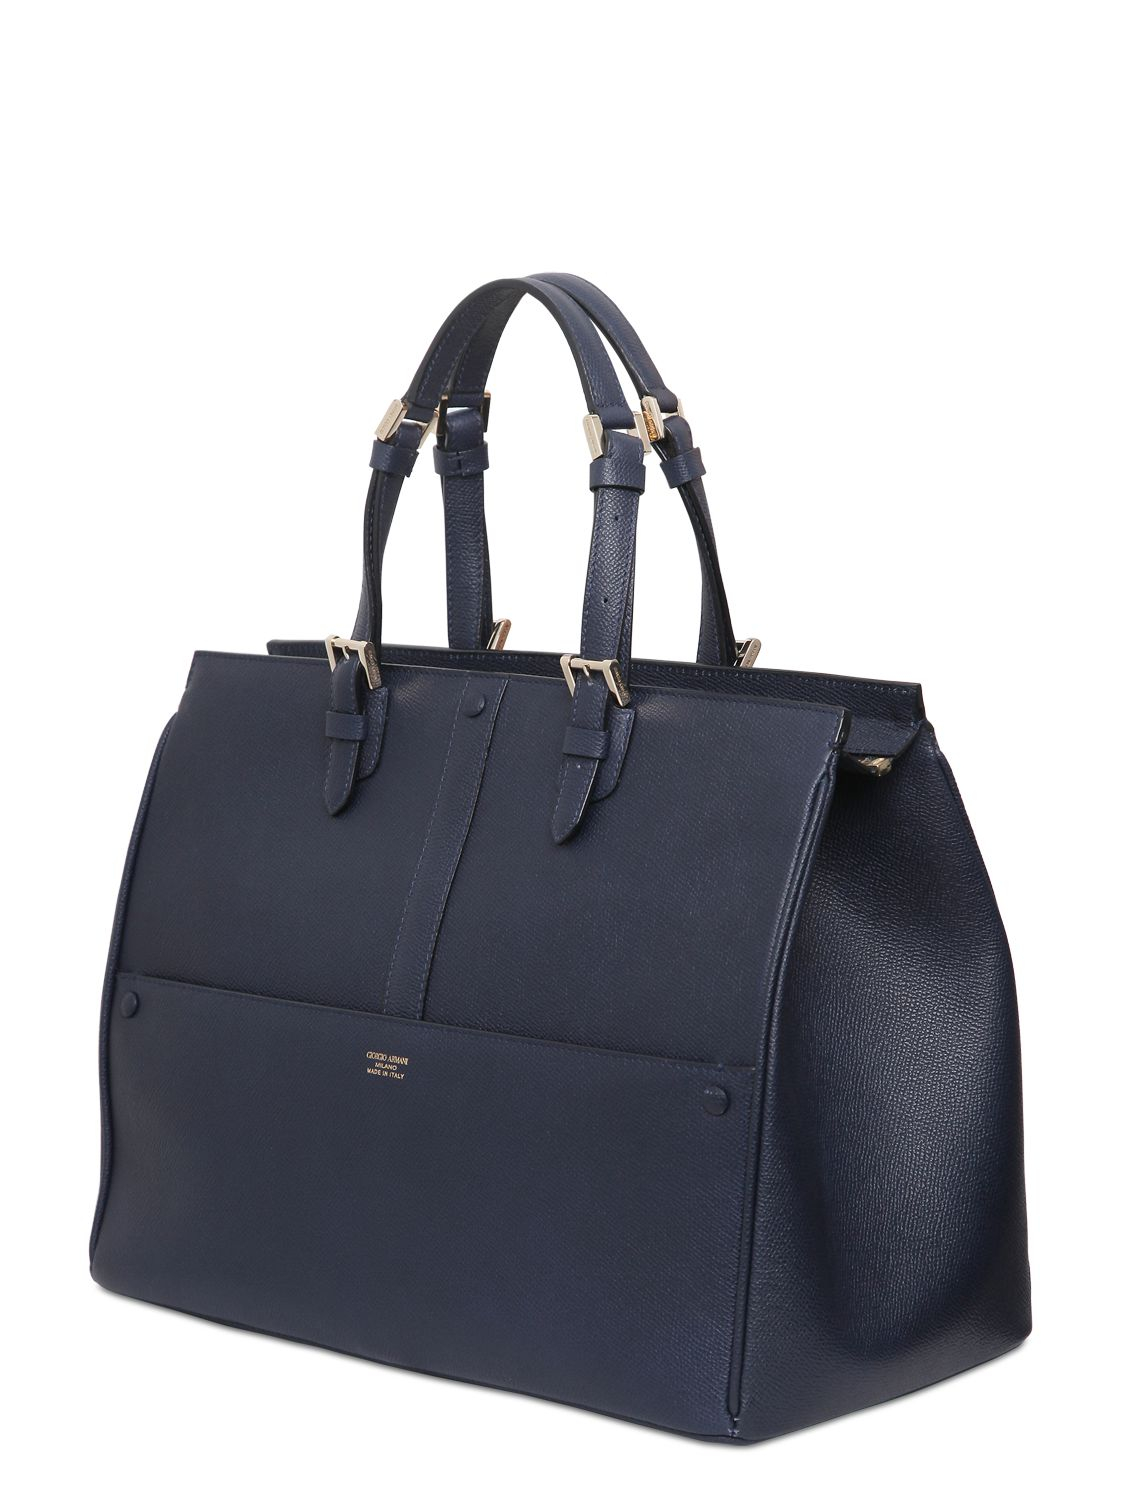 17d087105f39 Lyst - Giorgio Armani Weekend Saffiano Leather Top Handle Bag in Blue